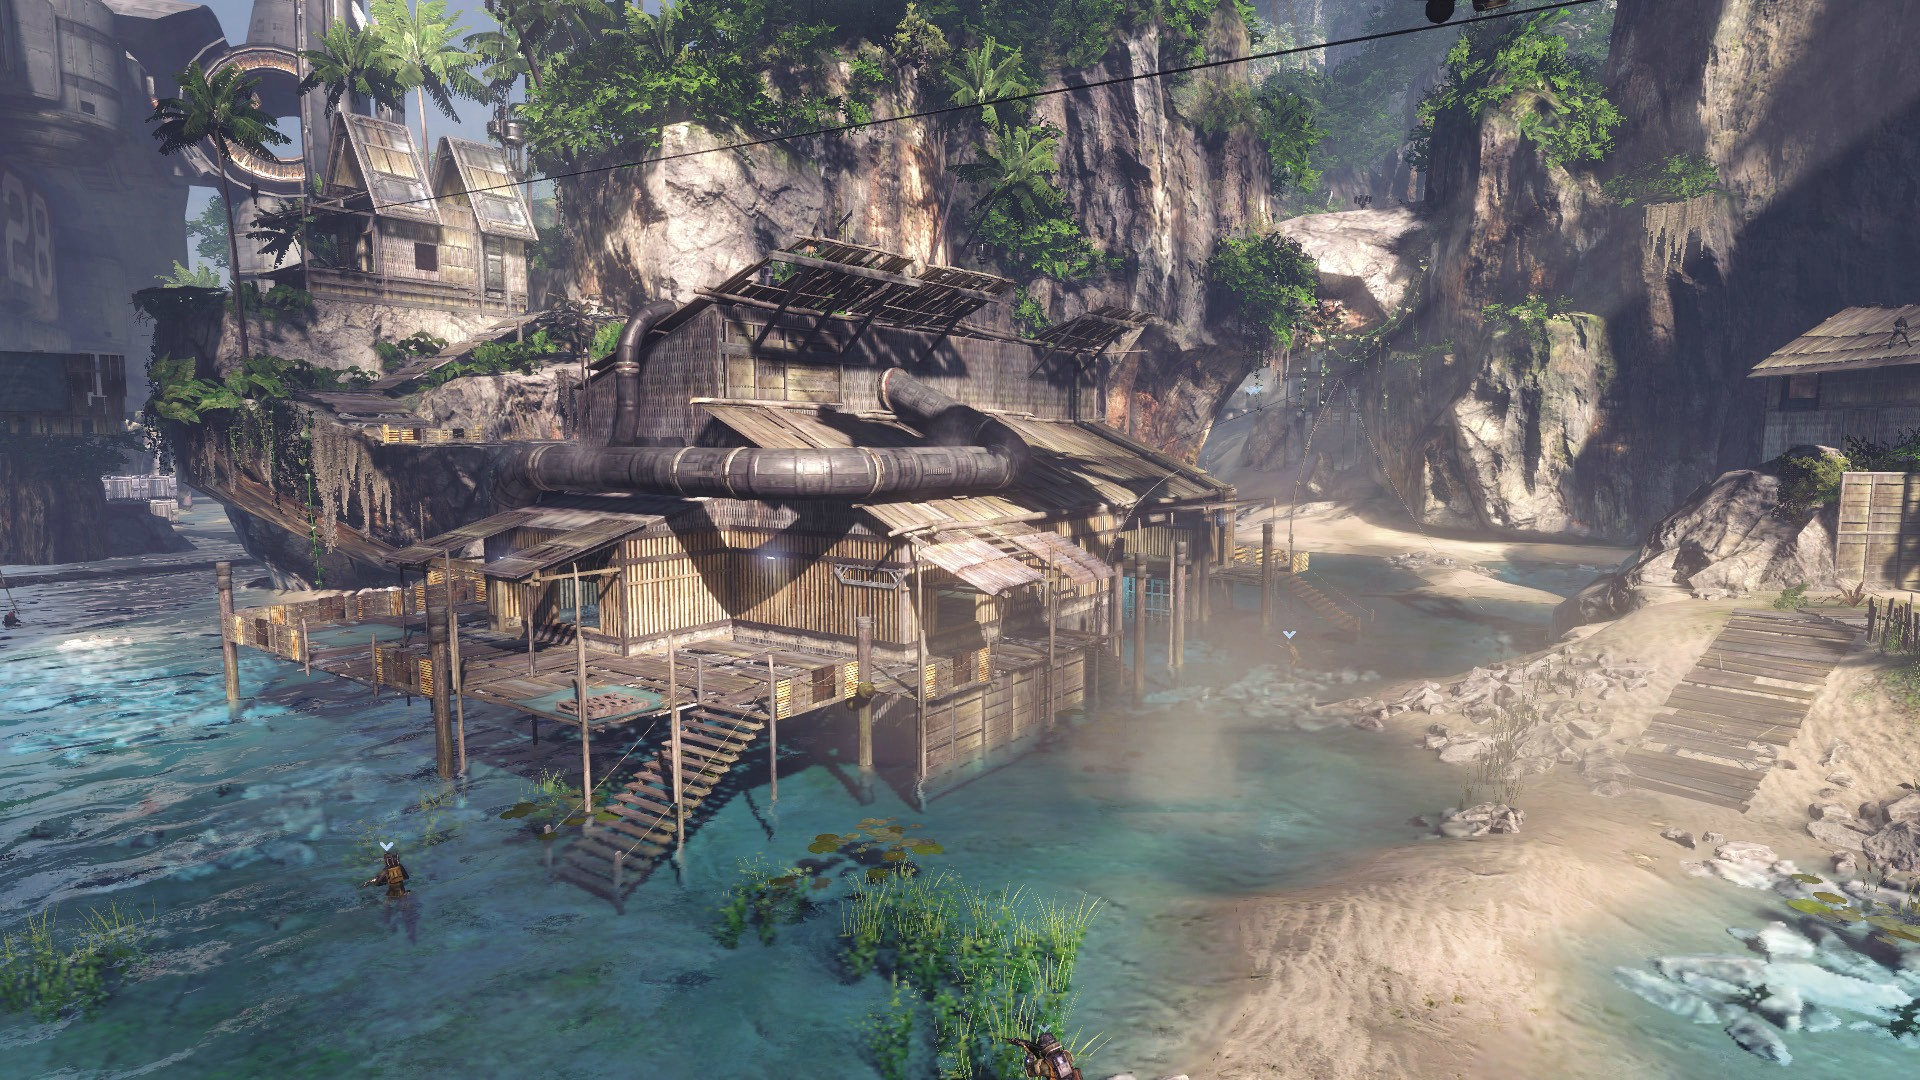 Report: Leaked Titanfall images reveal maps, modes and more